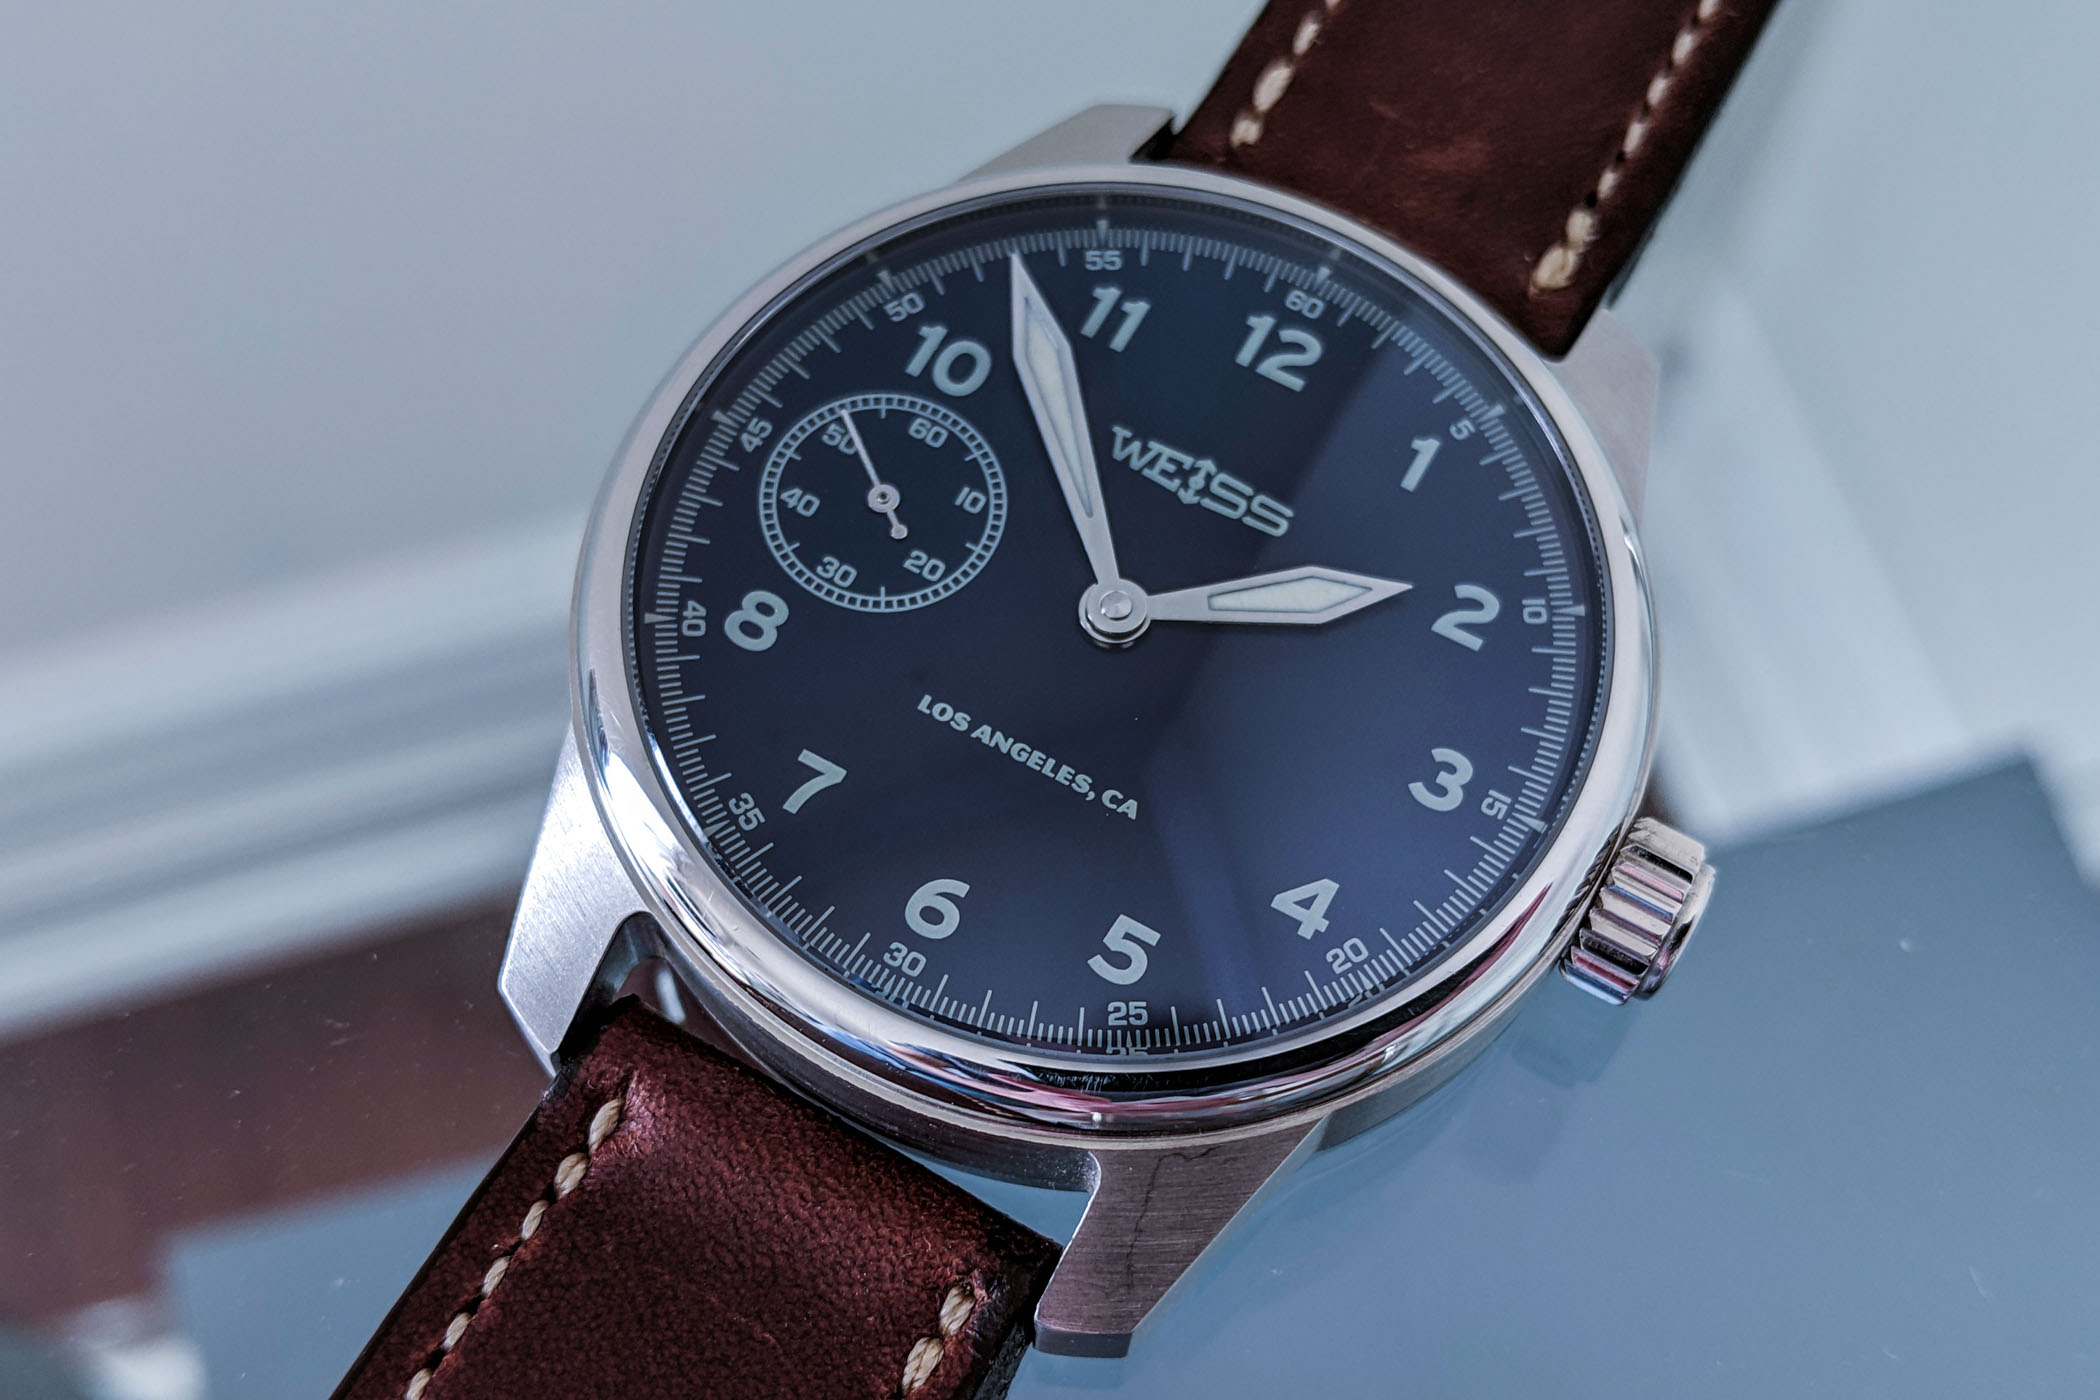 Weiss 42mm Limited American Issue Field Watch – American-Made Movement - 7